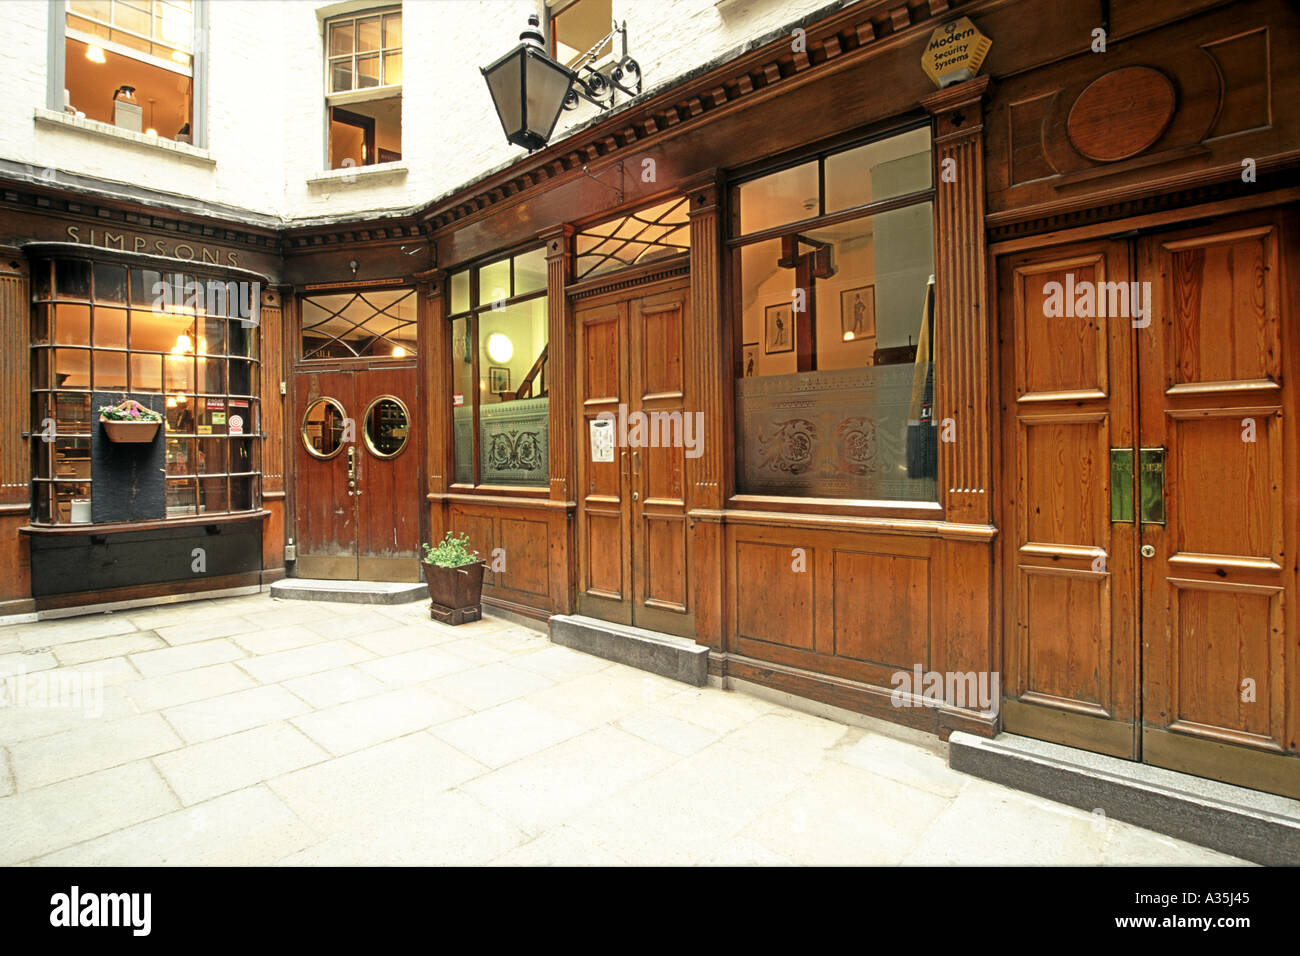 The exterior of the Victorian-era Simpson's Tavern in London. - Stock Image